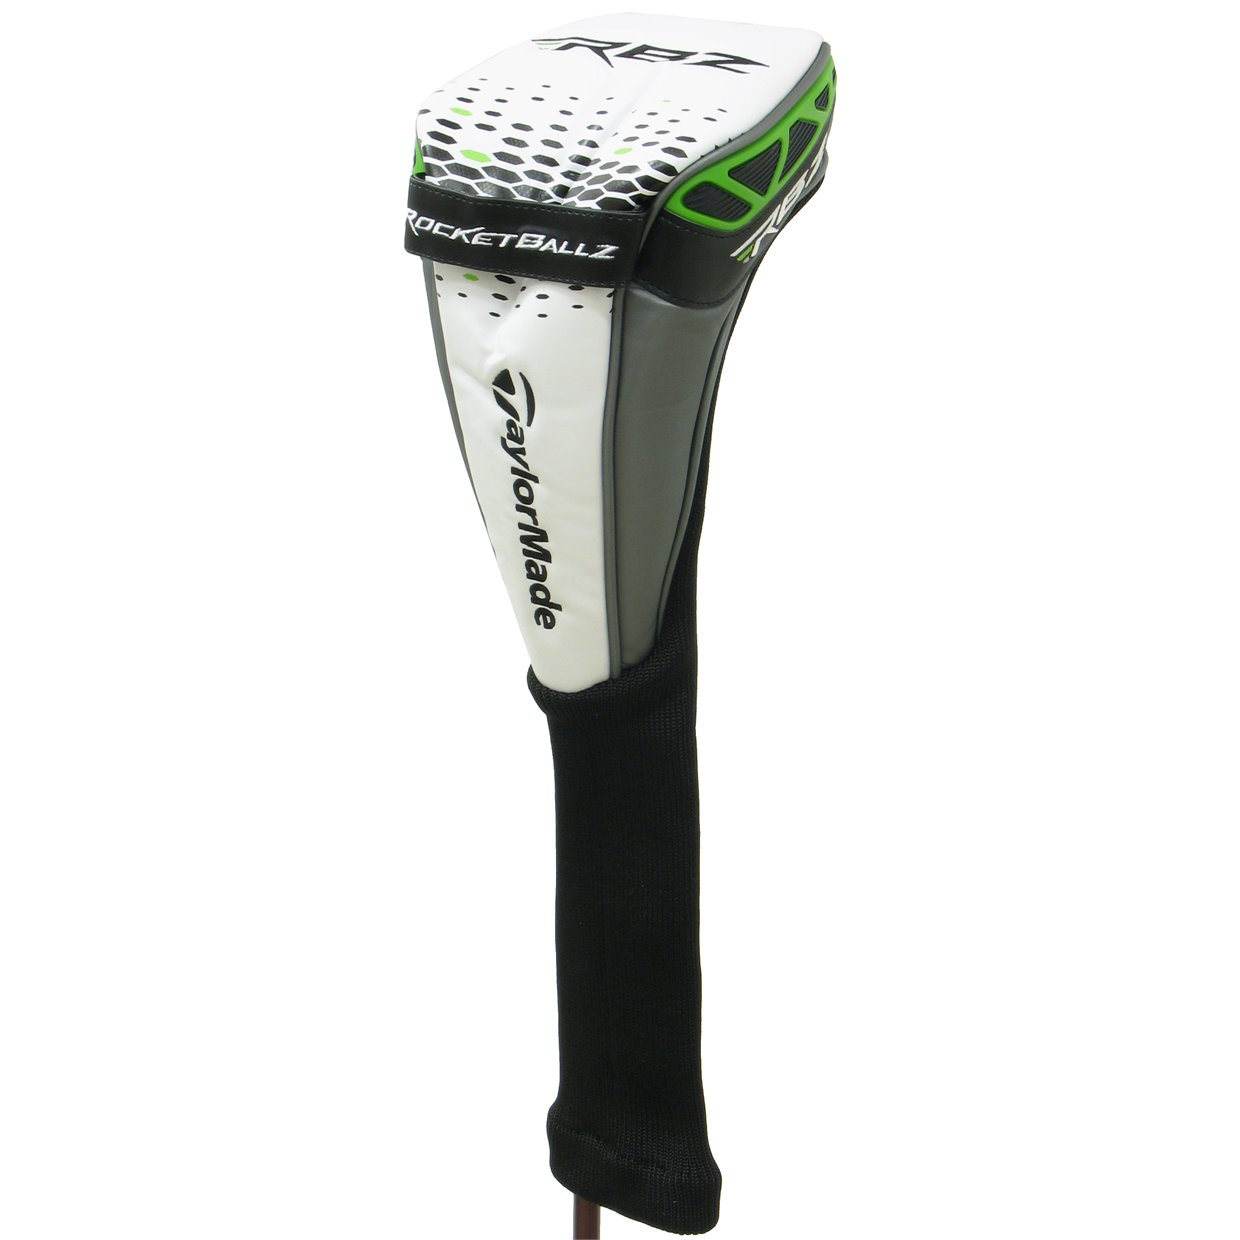 Taylormade Rocketballz Driver >> Preowned Taylormade Rocketballz Driver White Black Slime Headcover